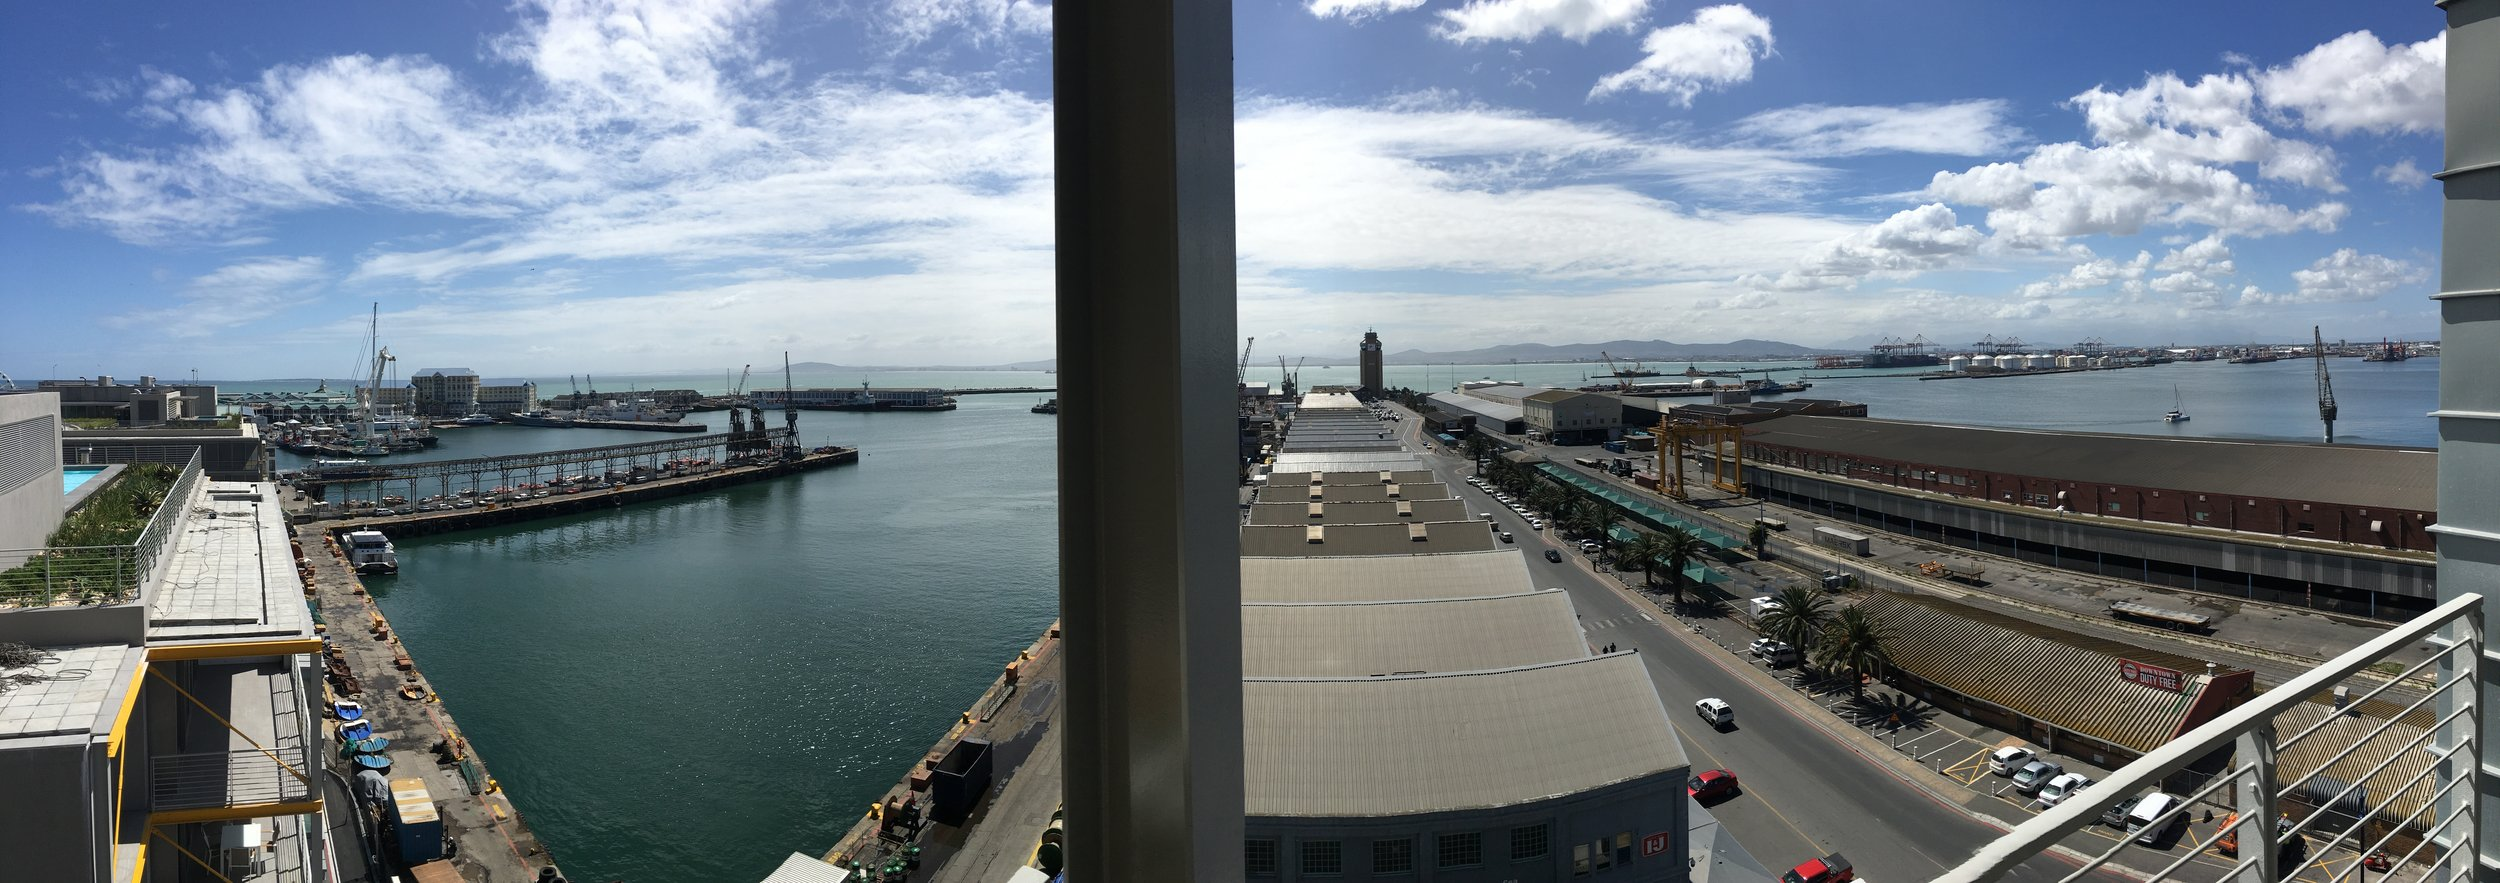 This image was taken from the main balcony of the apartment and looks over the V & A Waterfront and harbour.